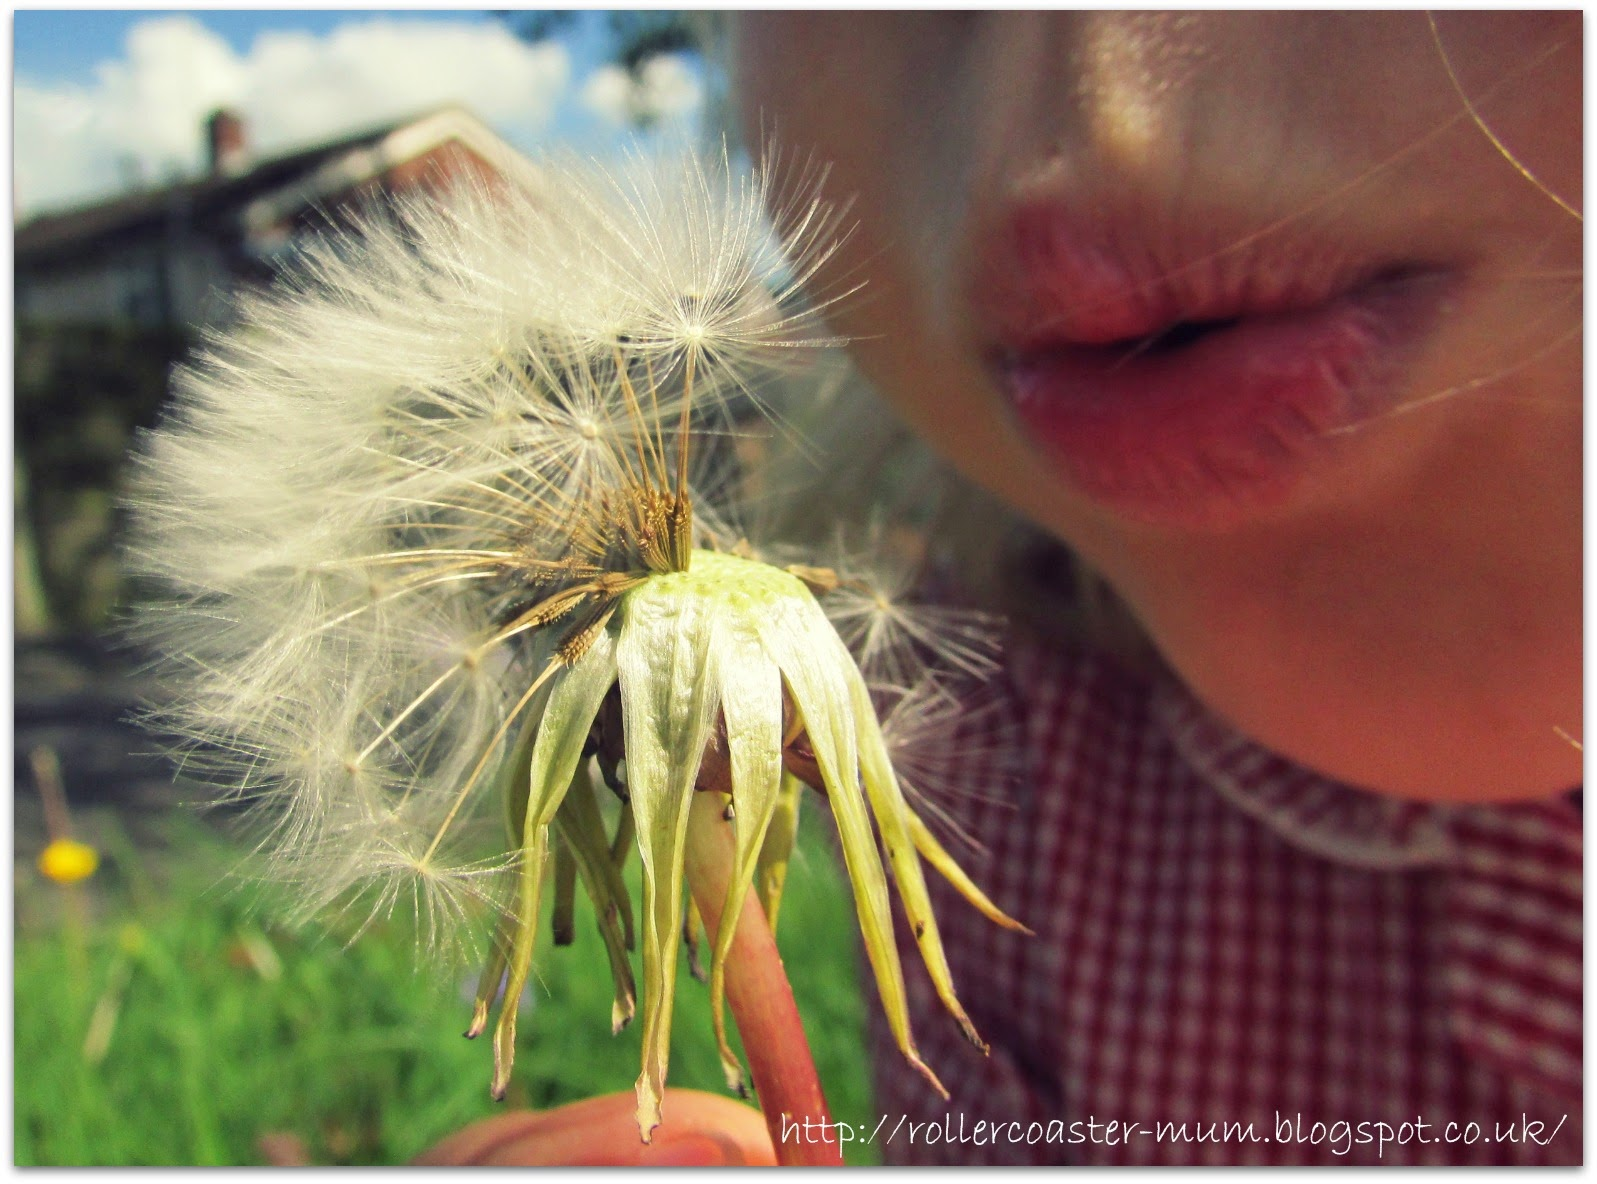 Telling the time from a dandelion clock